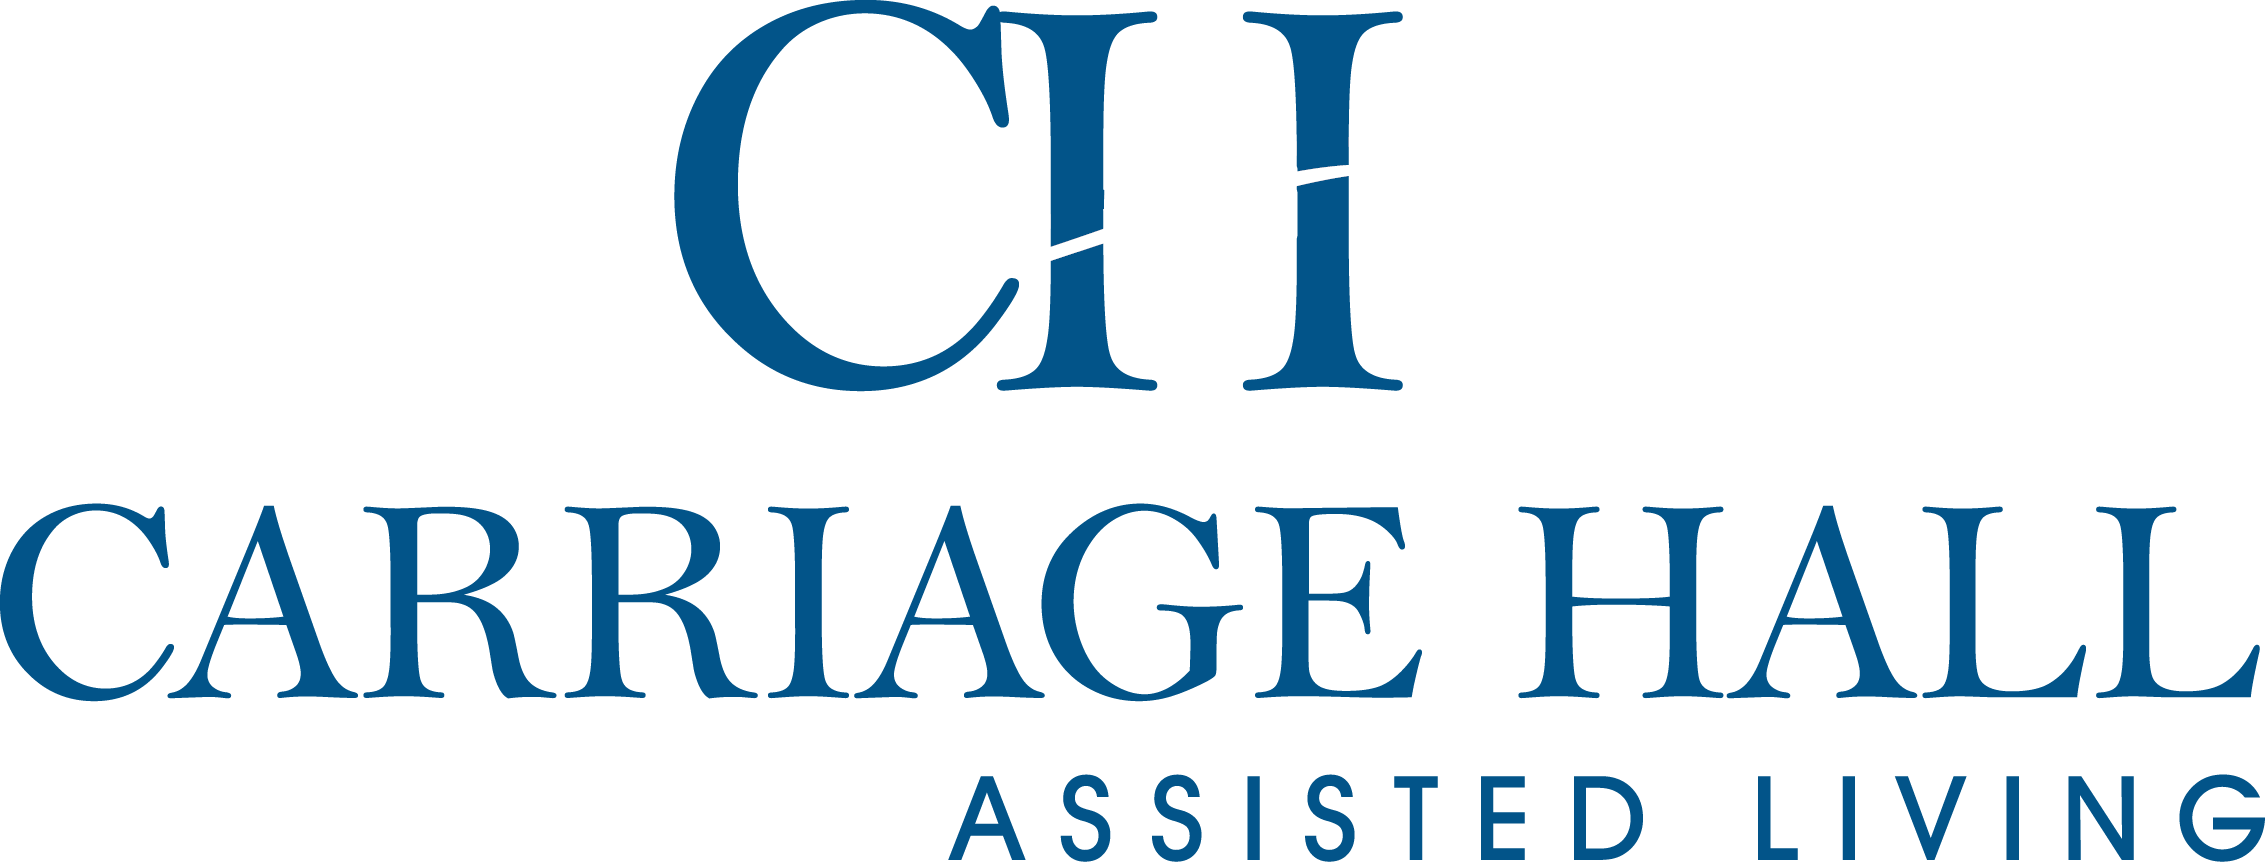 Carriage Hall Assisted Living Logo